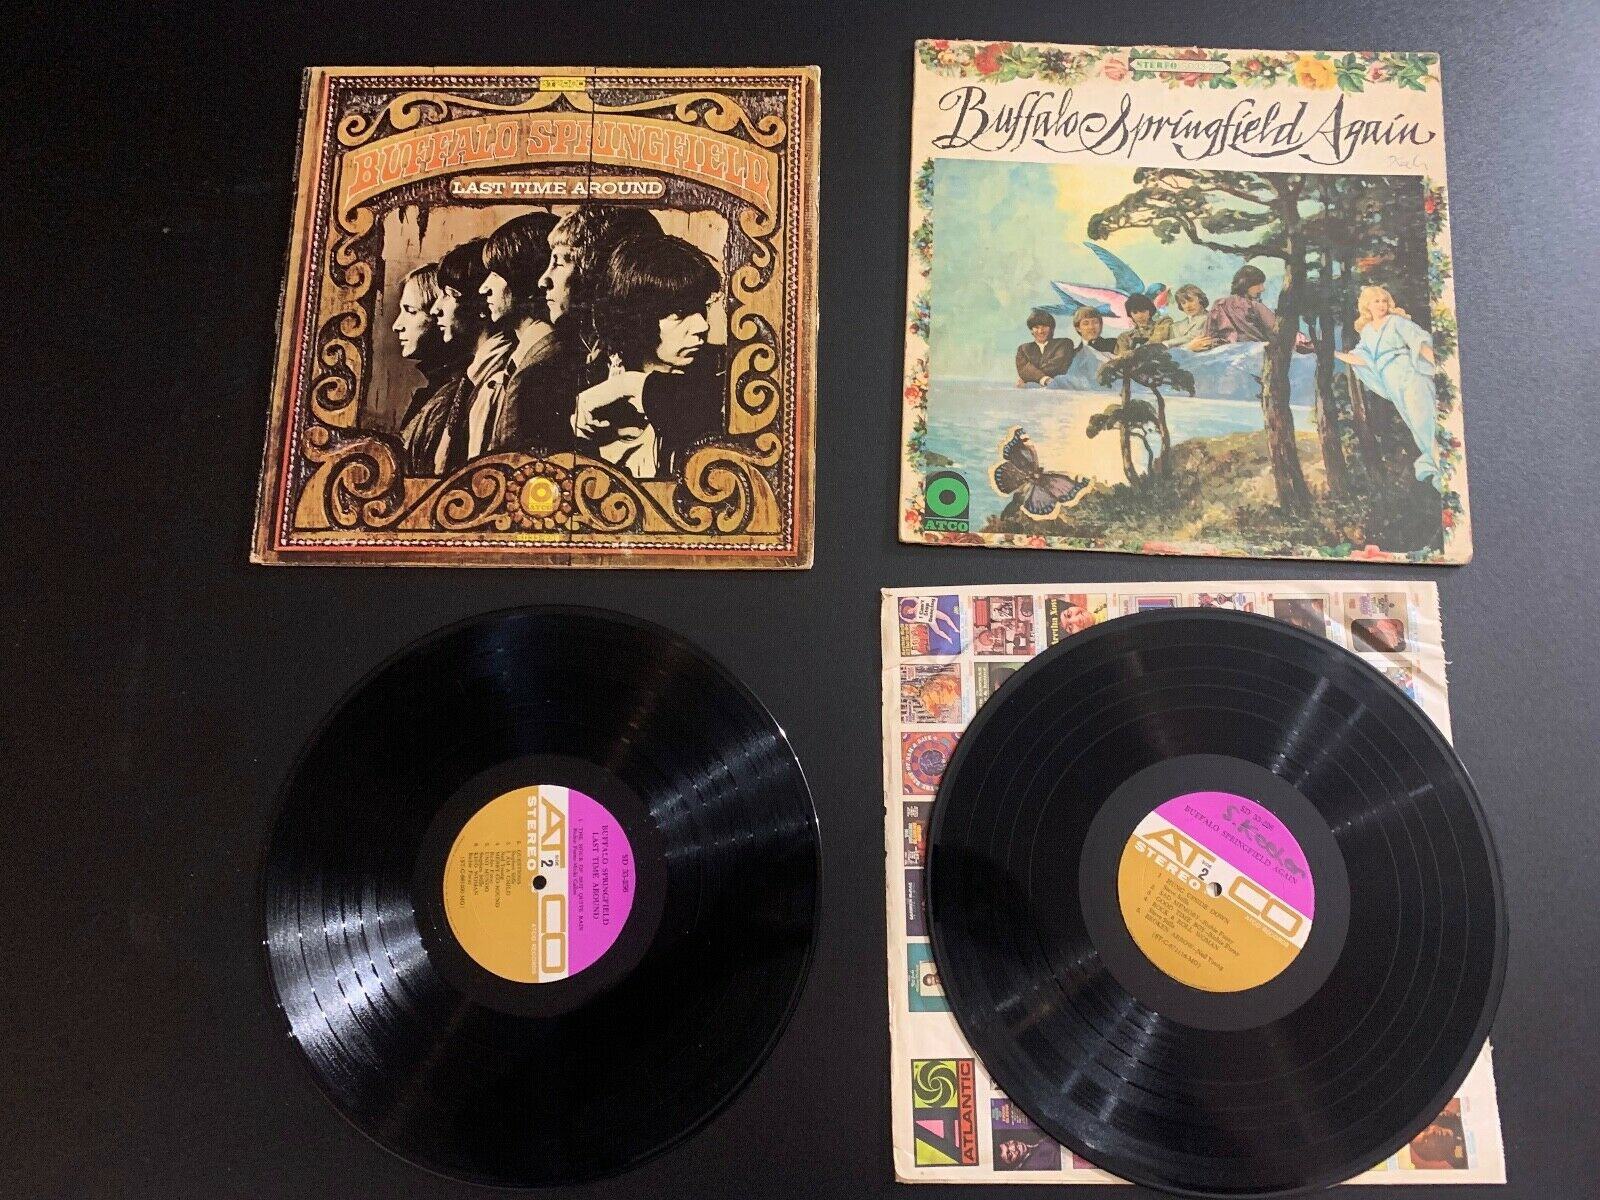 PAIR OF LPS RECORDS - BUFFALO SPRINGFIELD - LAST TIME AROUND AGAIN - $12.99